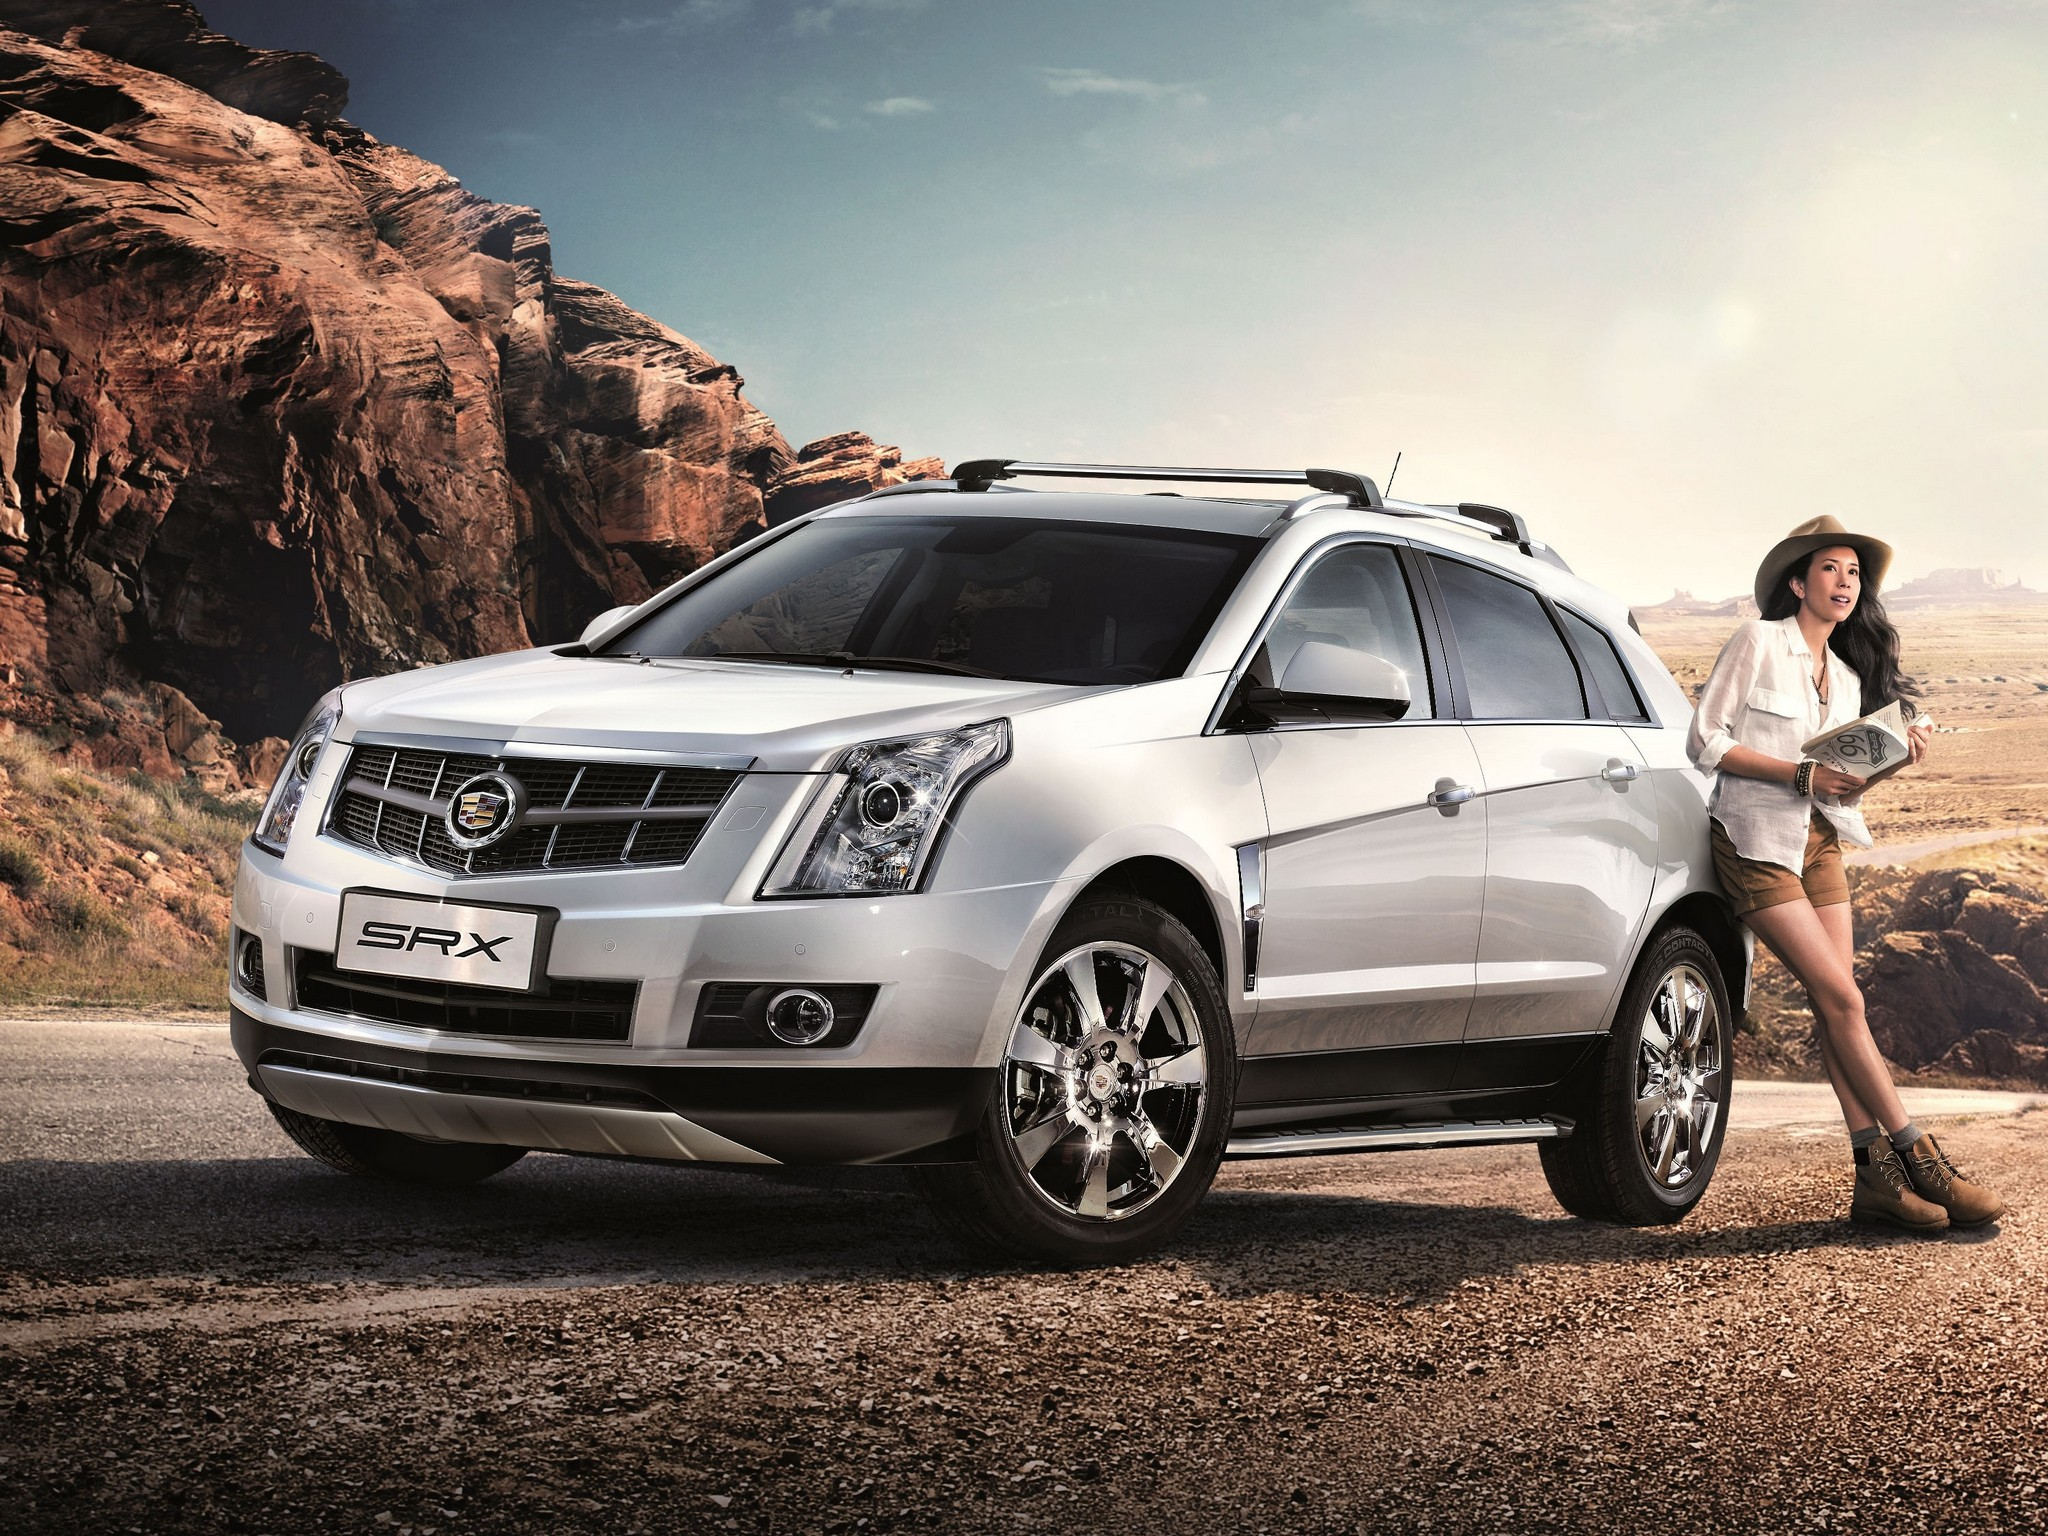 cadillac srx pictures #8